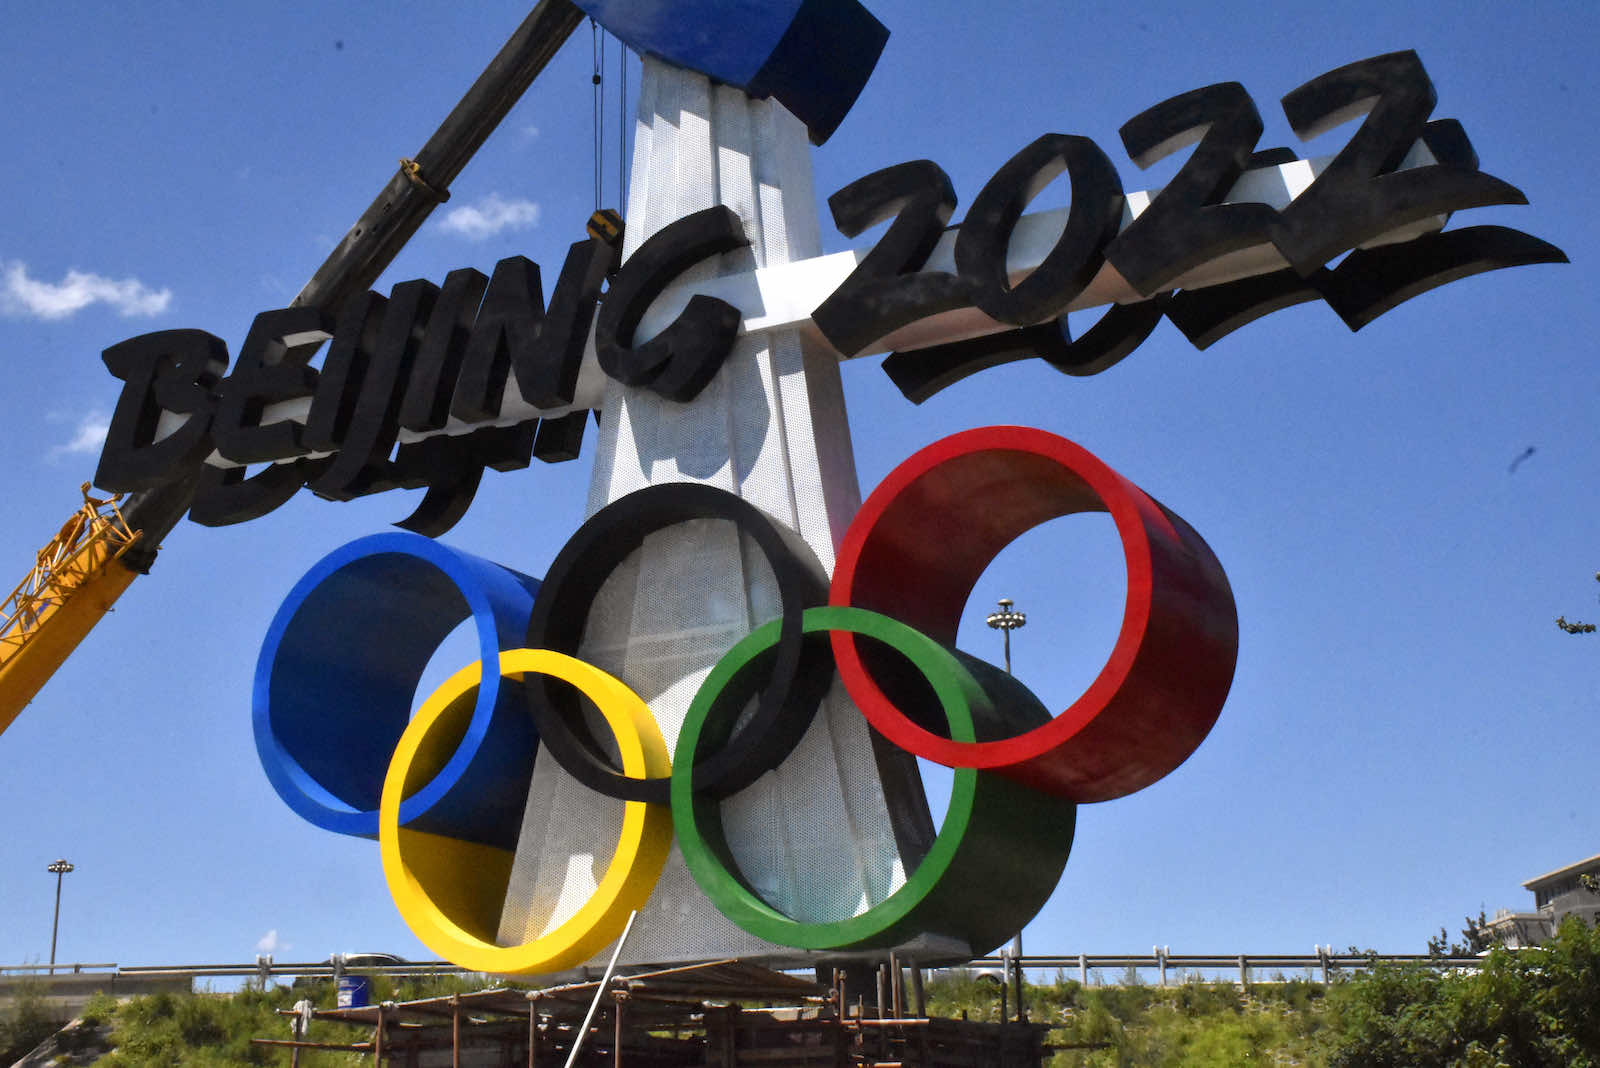 The emblem of Beijing 2022 Olympic Winter Games is installed at Shijingshan district, Beijing, on 1 August (VGC via Getty Images)